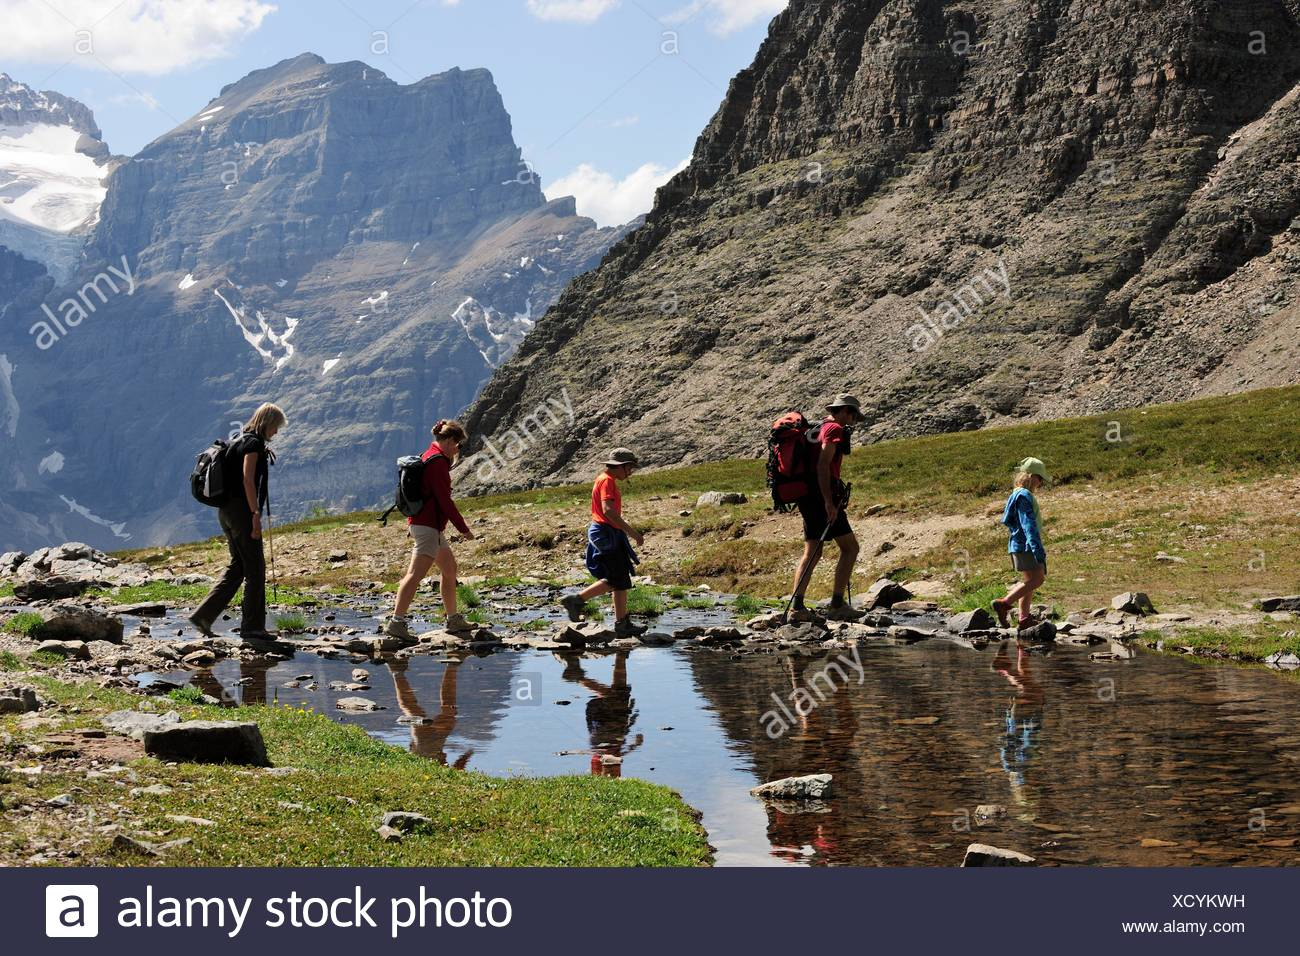 Hiker rambling in the Rocky Mountains crossing a small lake, Banff National Park, Alberta Province, Canada - Stock Image